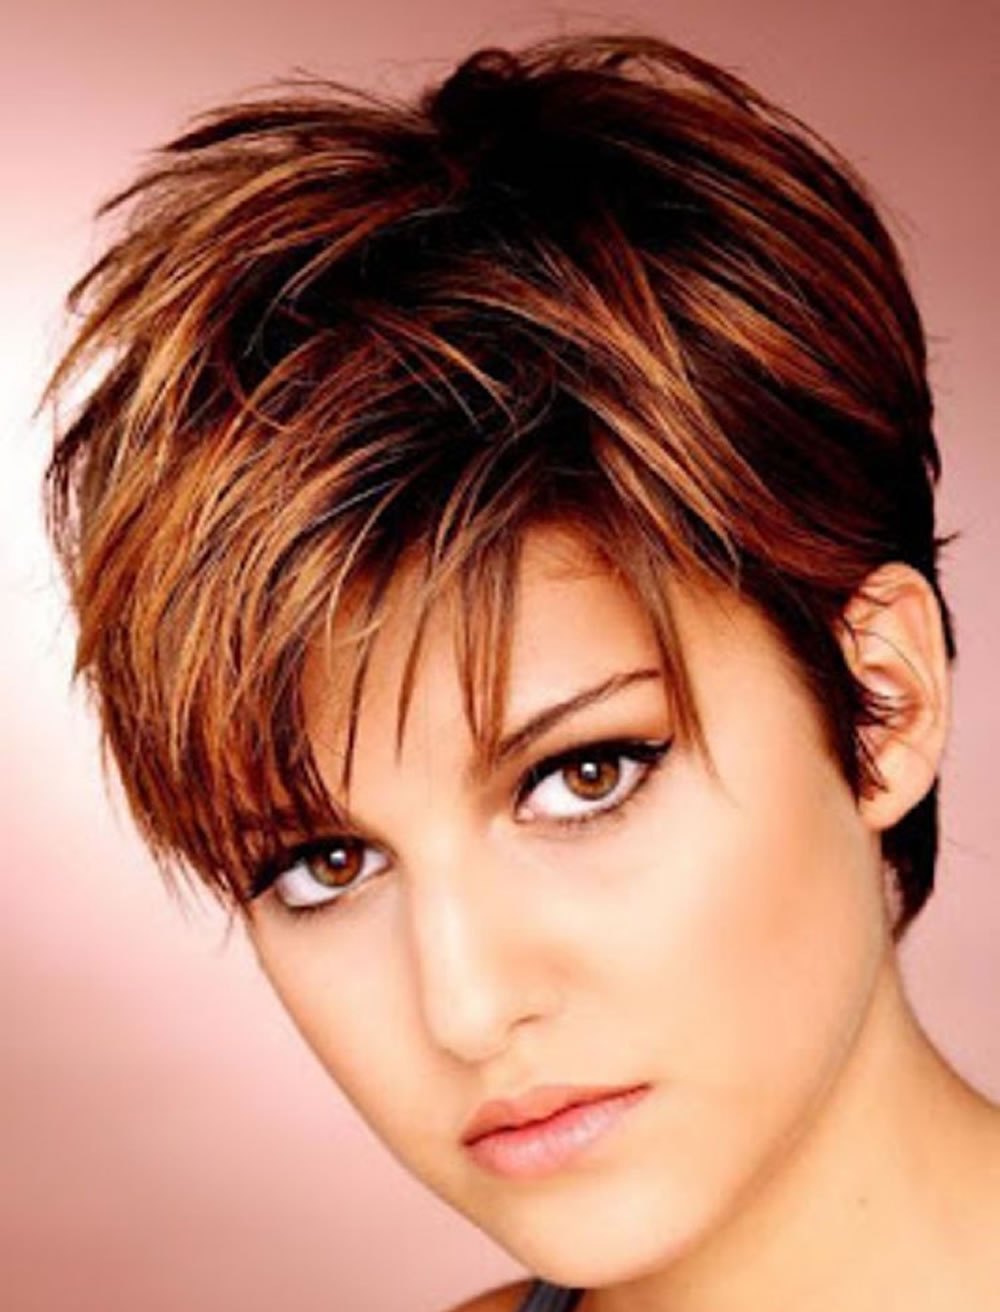 Short Haircuts For Round Face Thin Hair Ideas For 2018 – Hairstyles Throughout Trendy Short Haircuts For Round Faces (View 14 of 25)